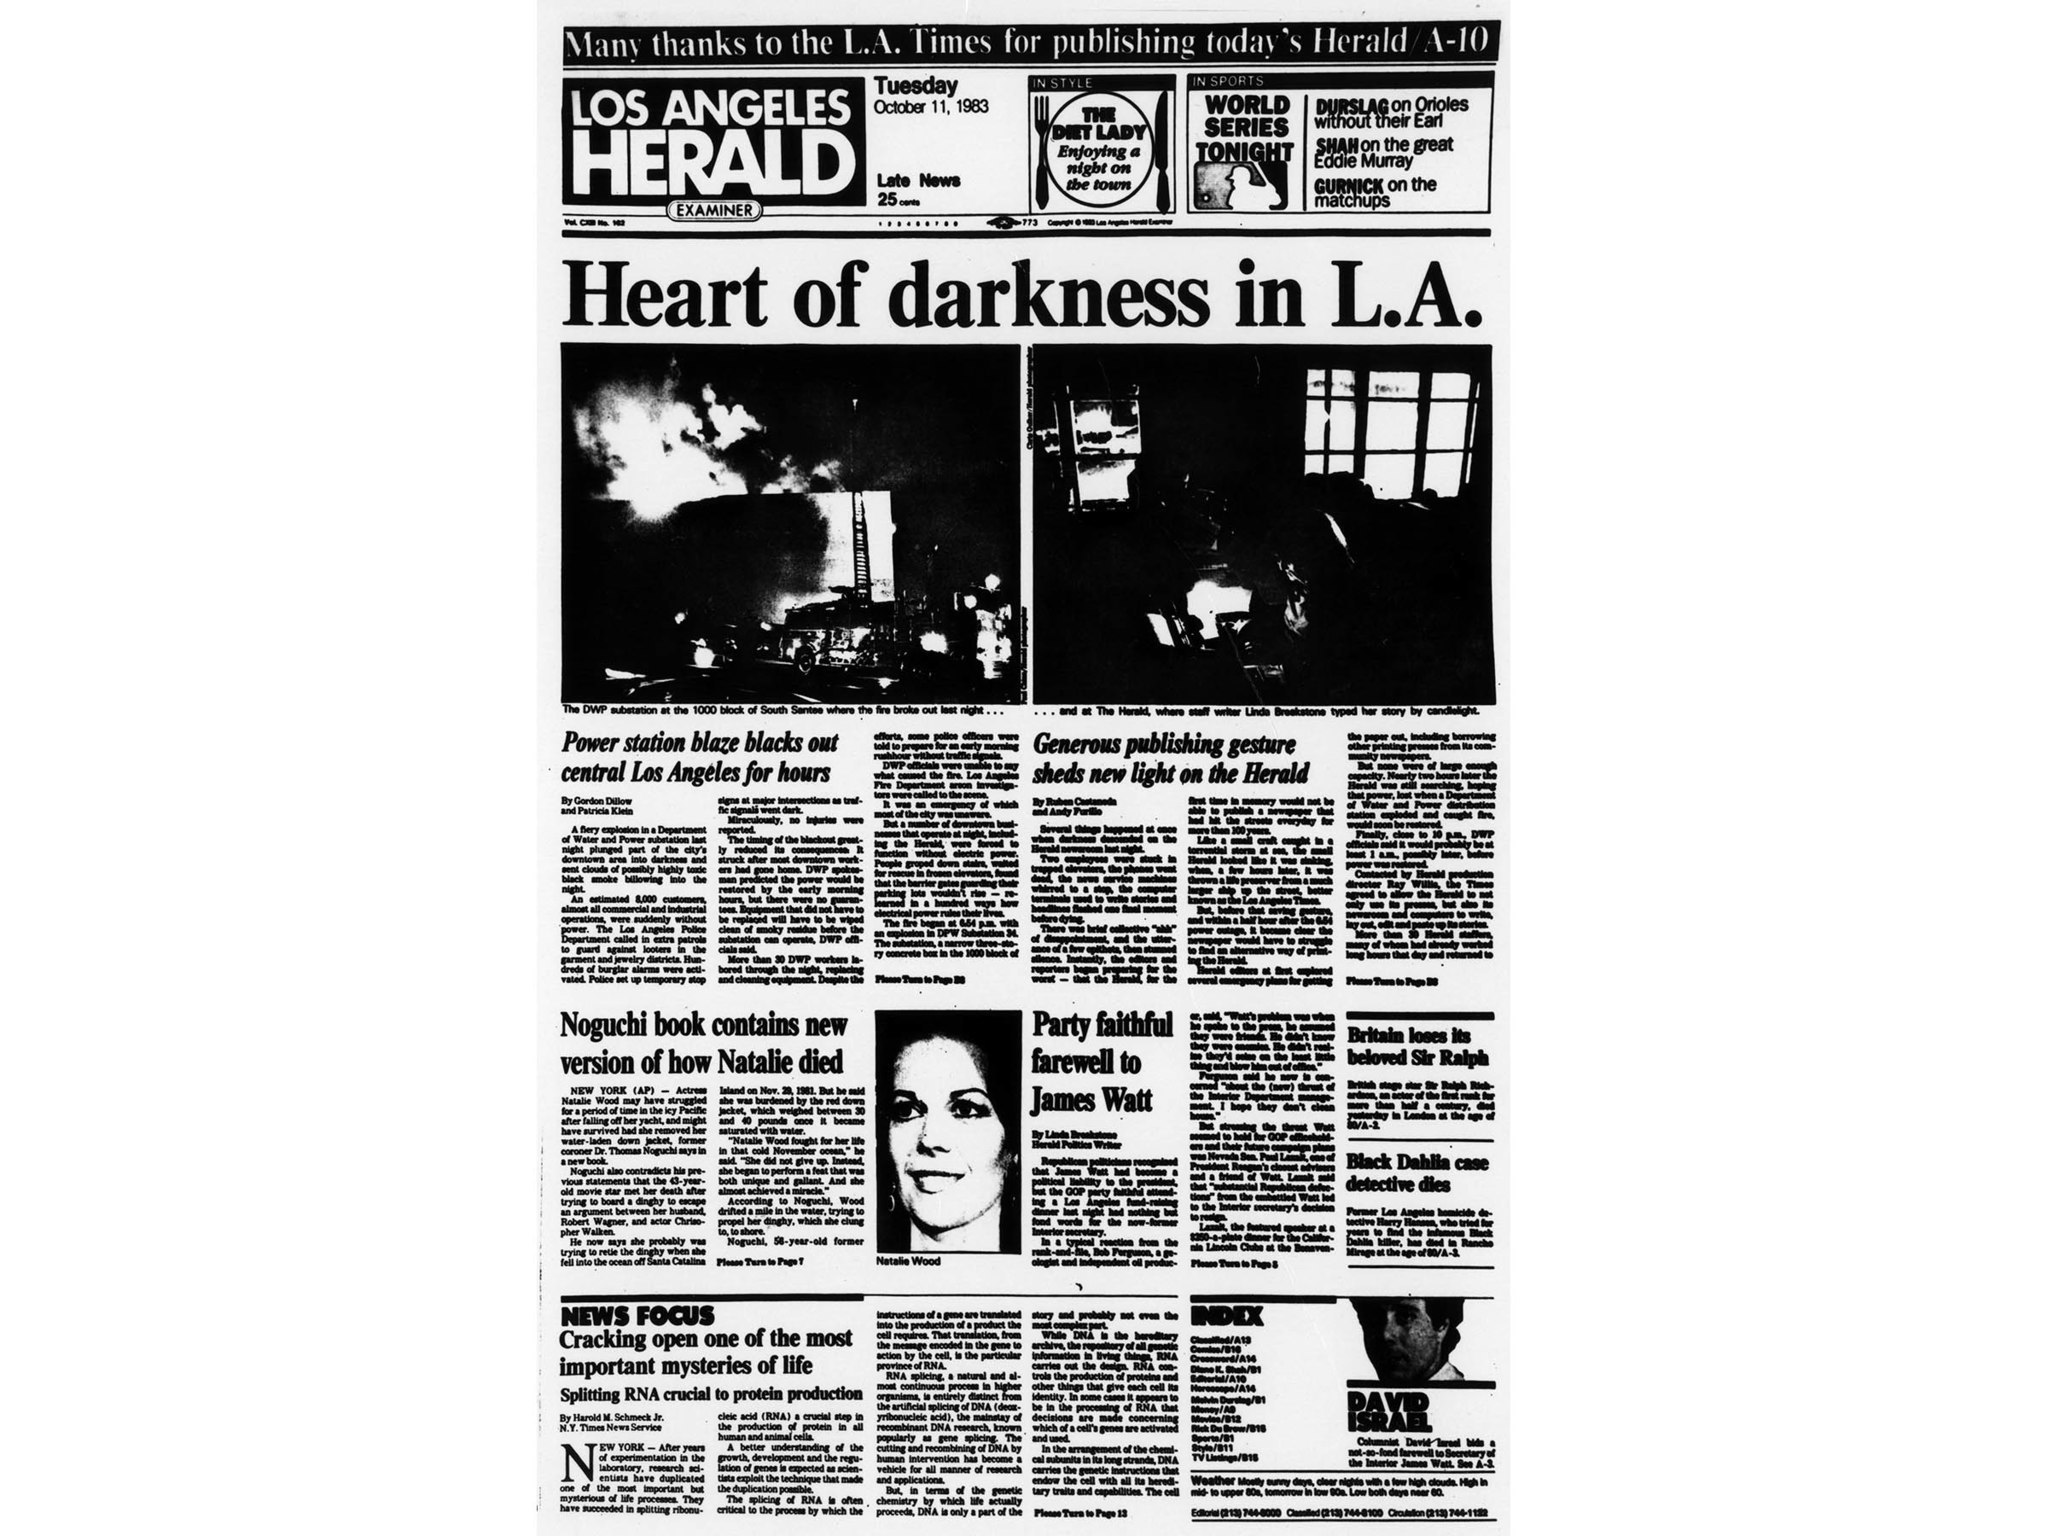 Oct. 11, 1983: Front page of the Oct. 11, 1983 Los Angeles Herald Examiner that was printed on the L